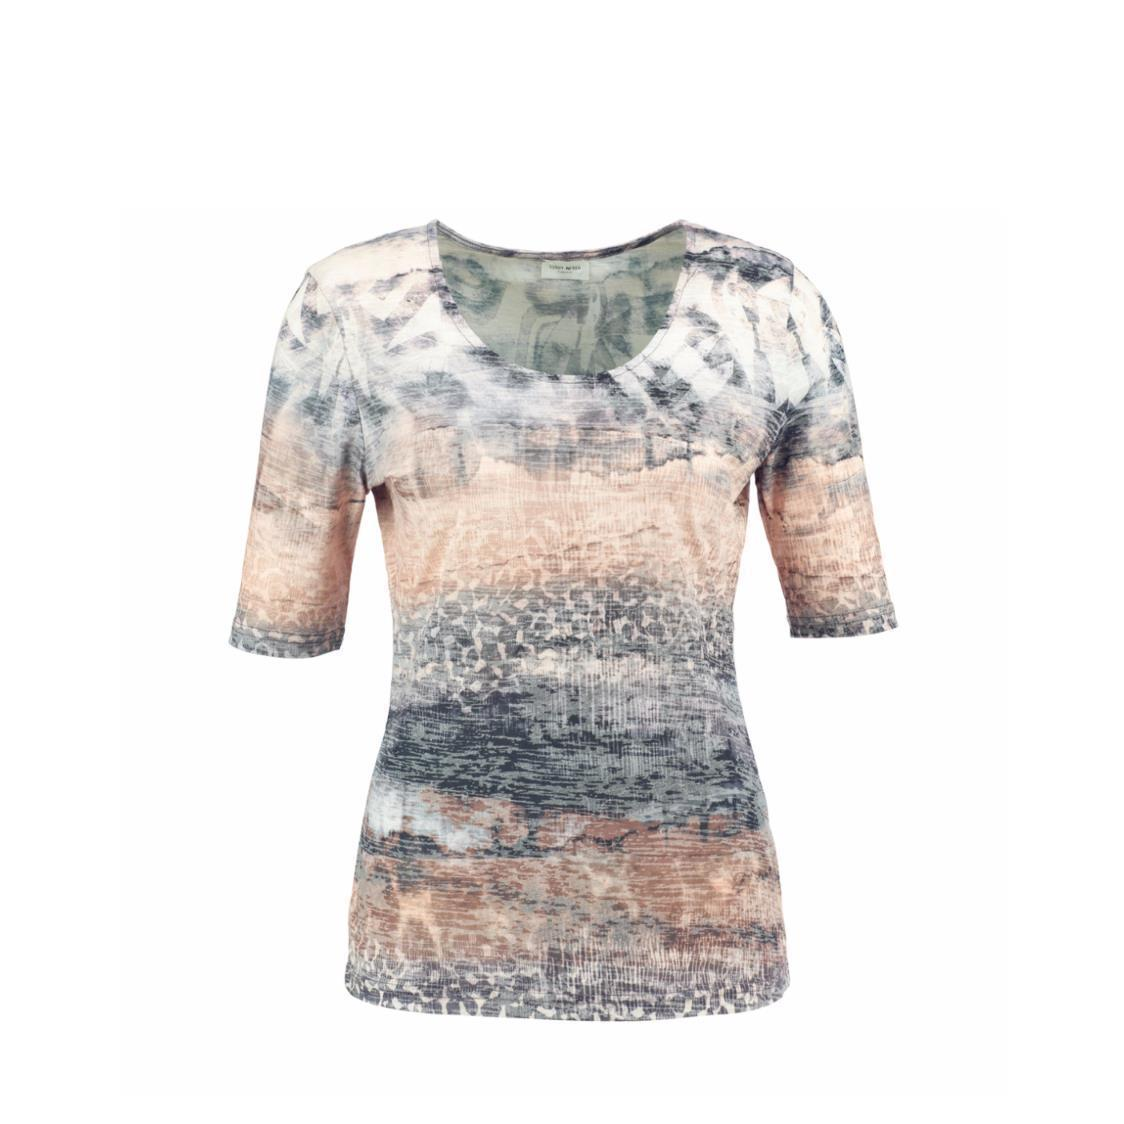 Printed Burnt-out Top